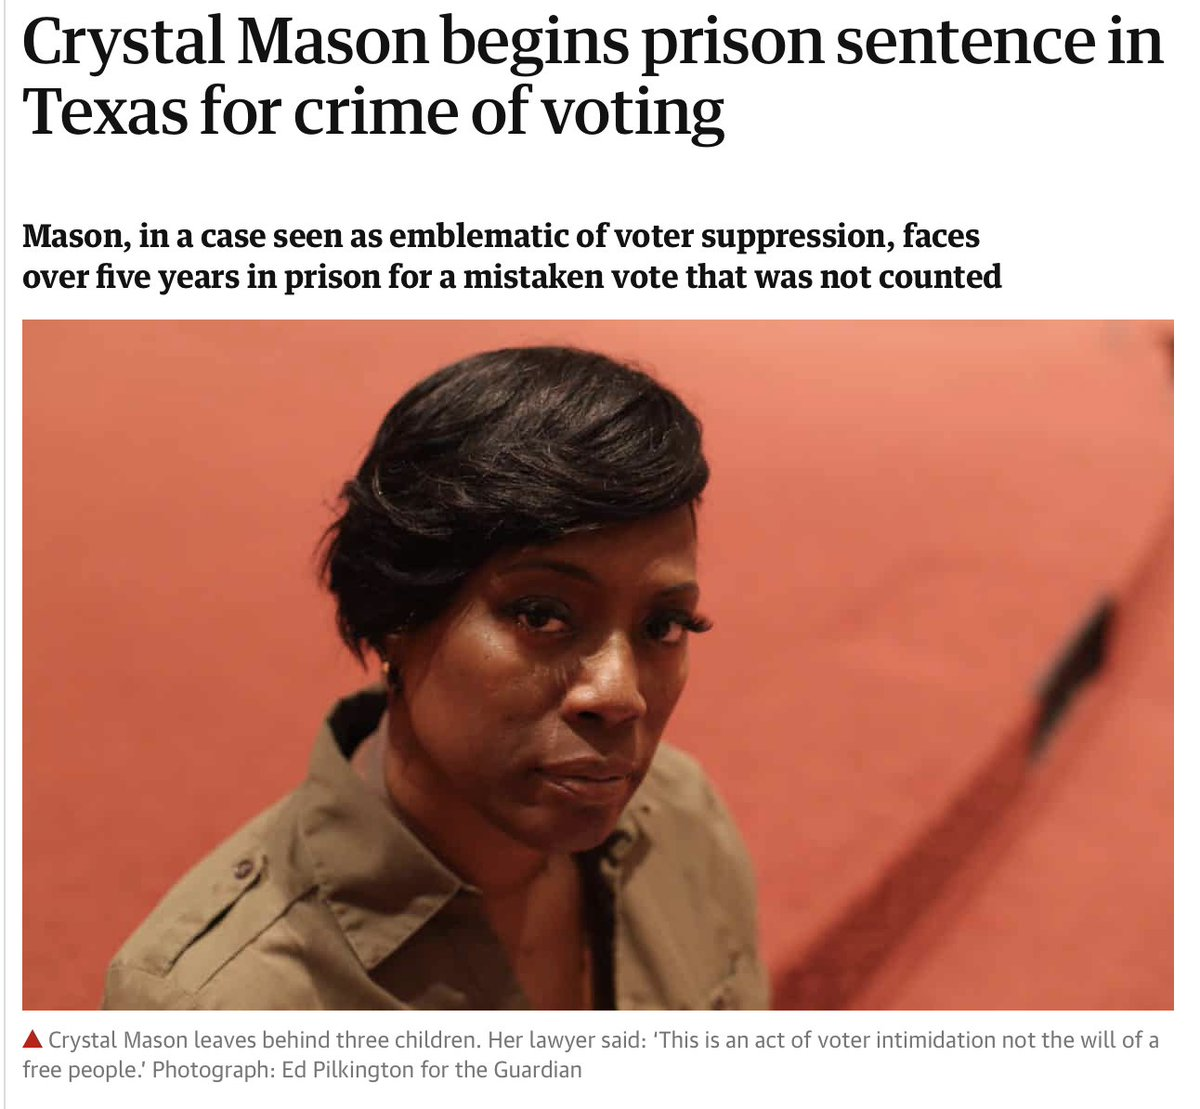 A tale of two Texans. Crystal Mason voted in 2016 while on probation: 5 years in prison. Jacob Anderson raped his classmate in 2016: probation & a $400 fine.